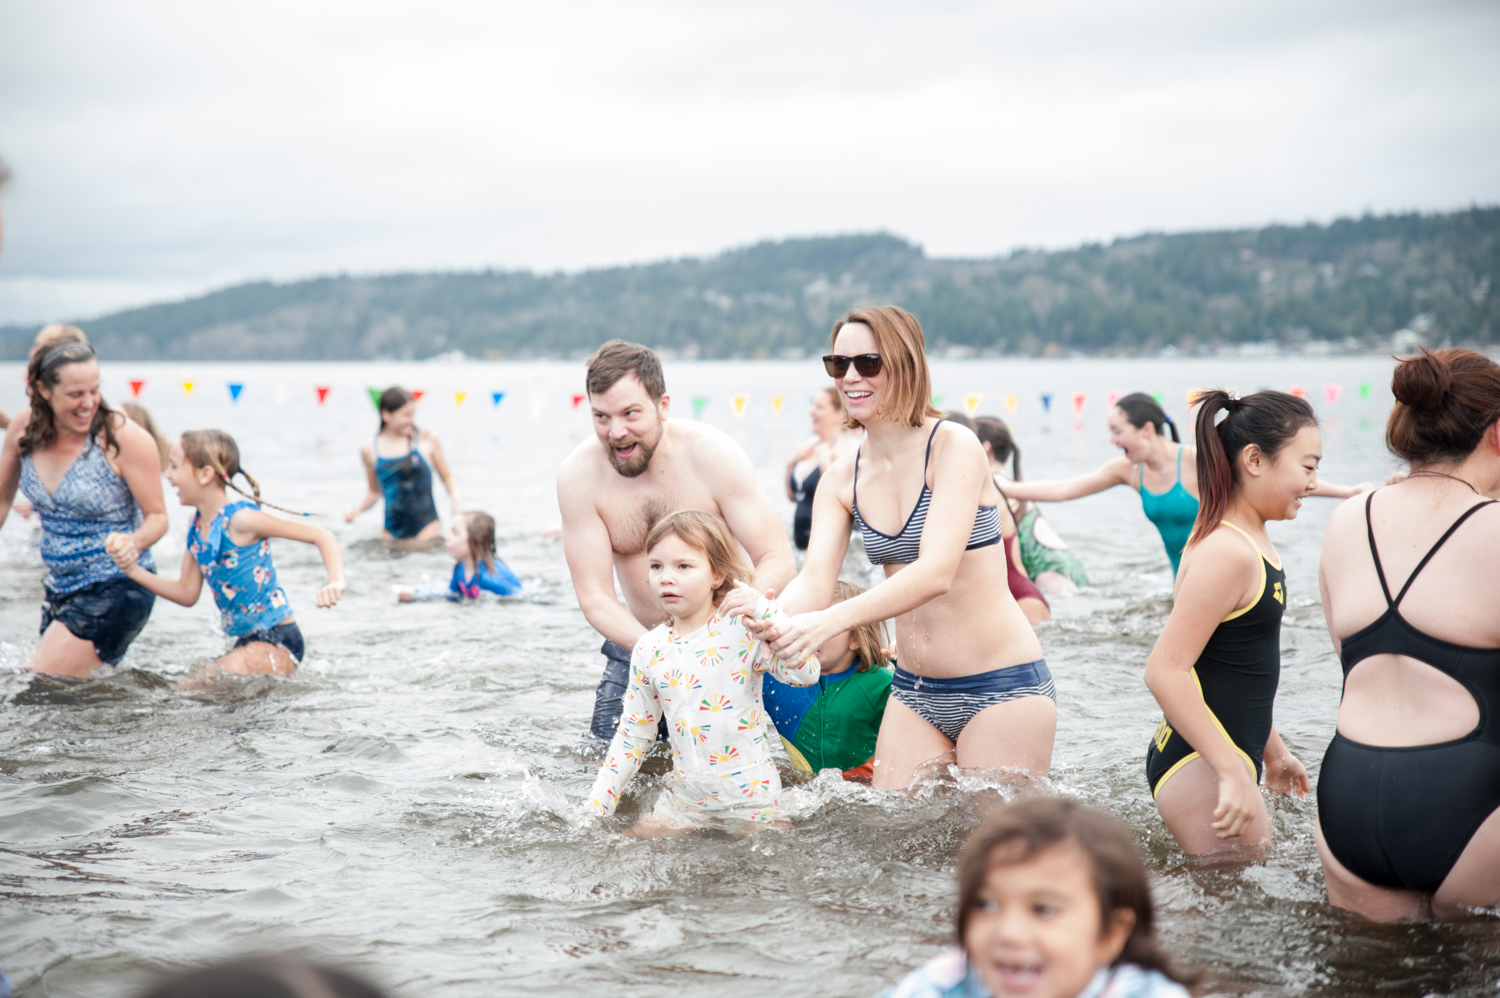 Happy New Year! How are you spending the first day of 2020? Thousands of people spent it in the freezing cold waters of Lake Washington at high noon exactly, as part of the annual Polar Bear Plunge. Costumes were encouraged as participants gathered at Matthews Beach beforehand, and had warm refreshments waiting for them afterwards! Limited Badges of Courage were awarded to those who darned to fully submerge…..HAPPY 2018! January 1, 2020. (Image: Elizabeth Crook / Seattle Refined)